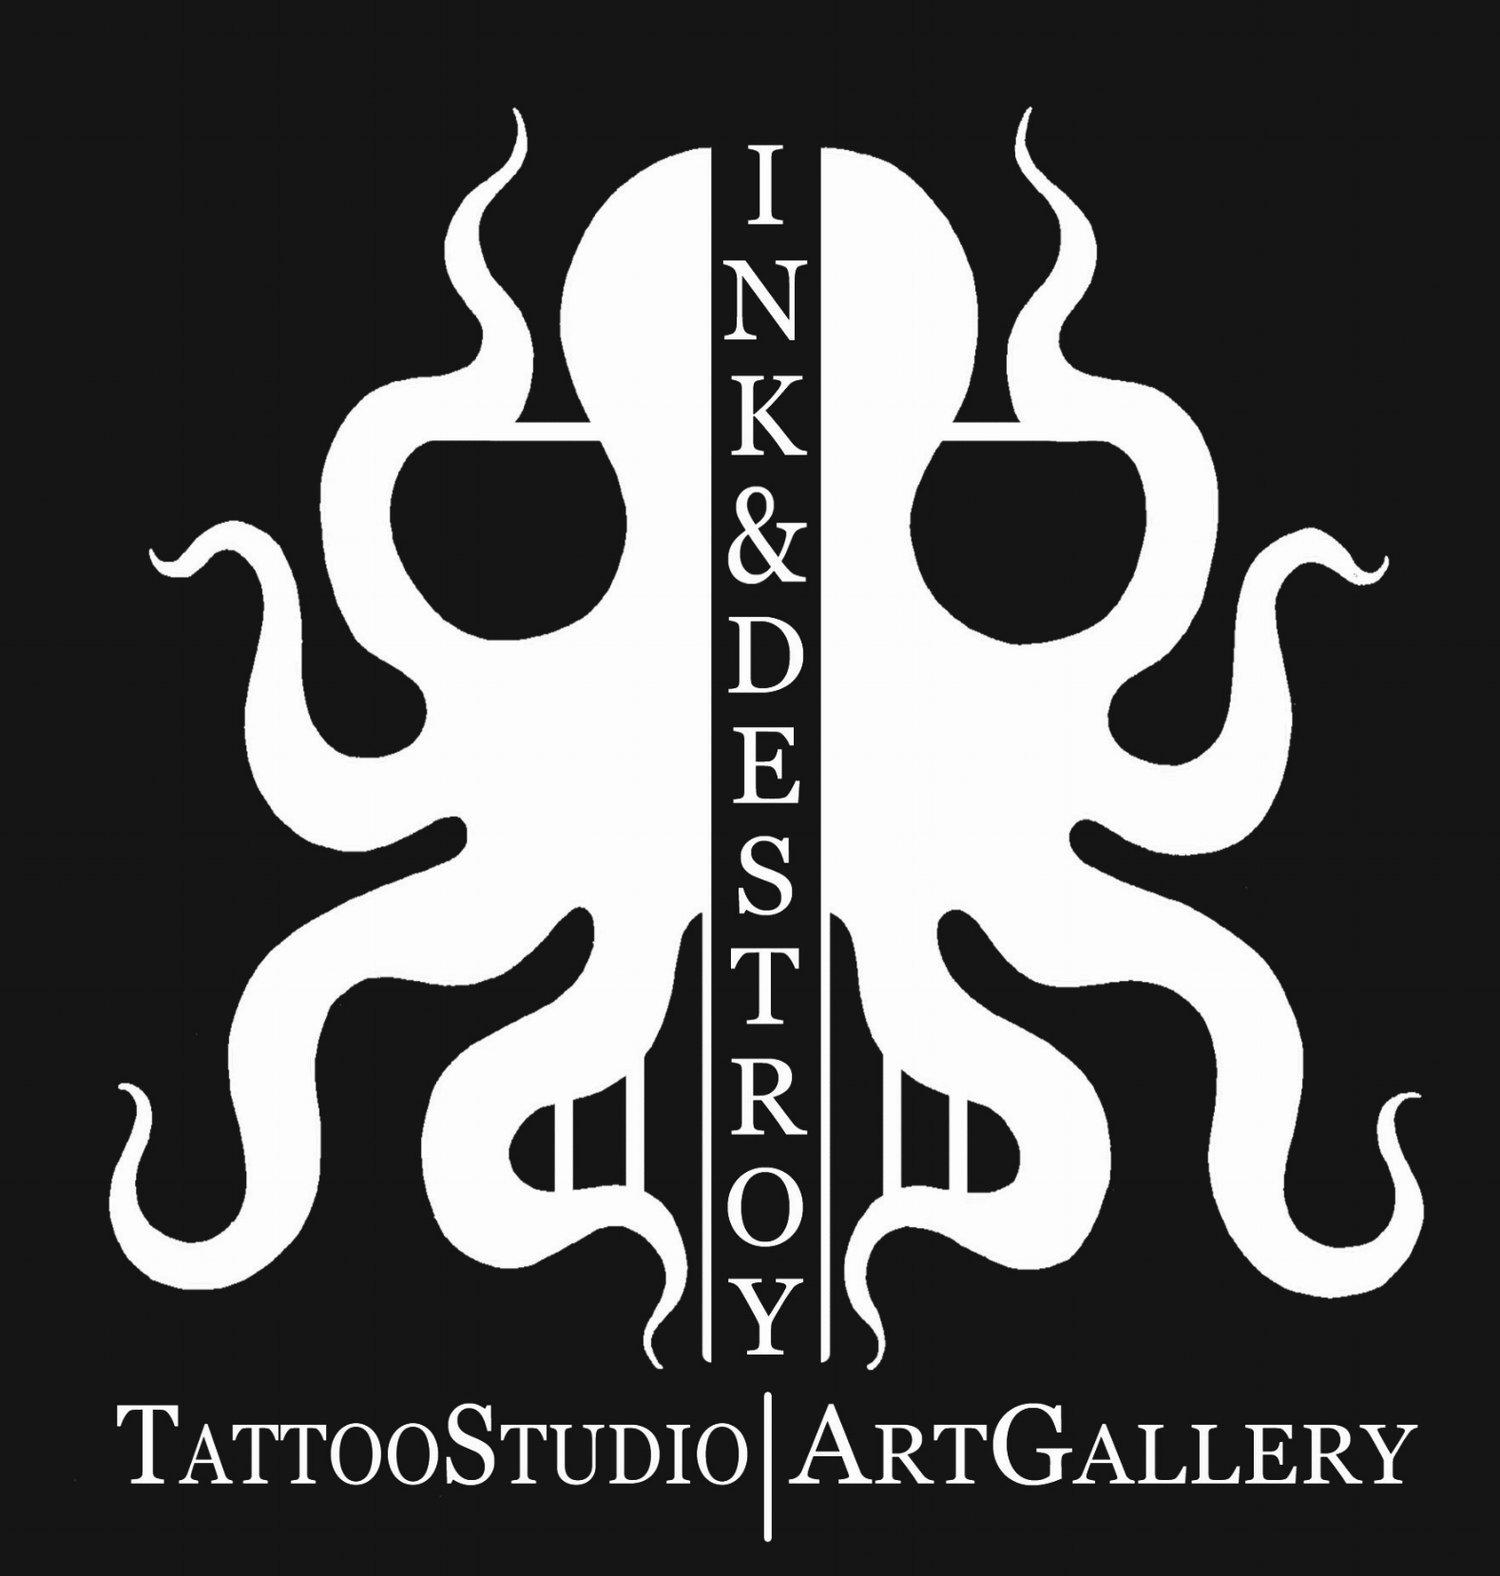 Ink & Destroy Tattoo Studio